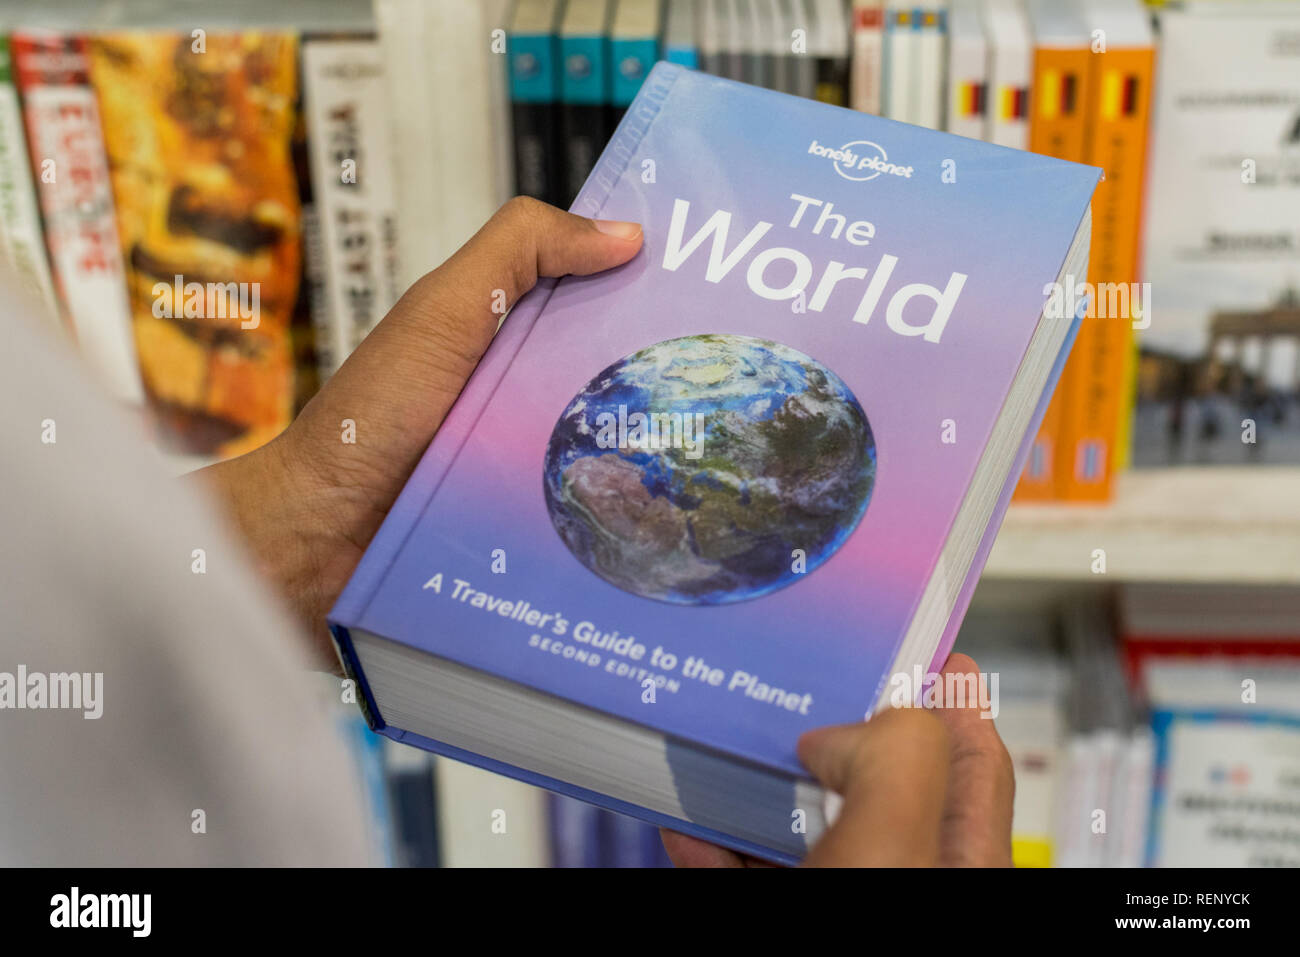 Bangkok, Thailand - July 21, 2018: Lonely Planet guidebook The World, A Traveller's Guide to the Planet, Second Edition. - Stock Image